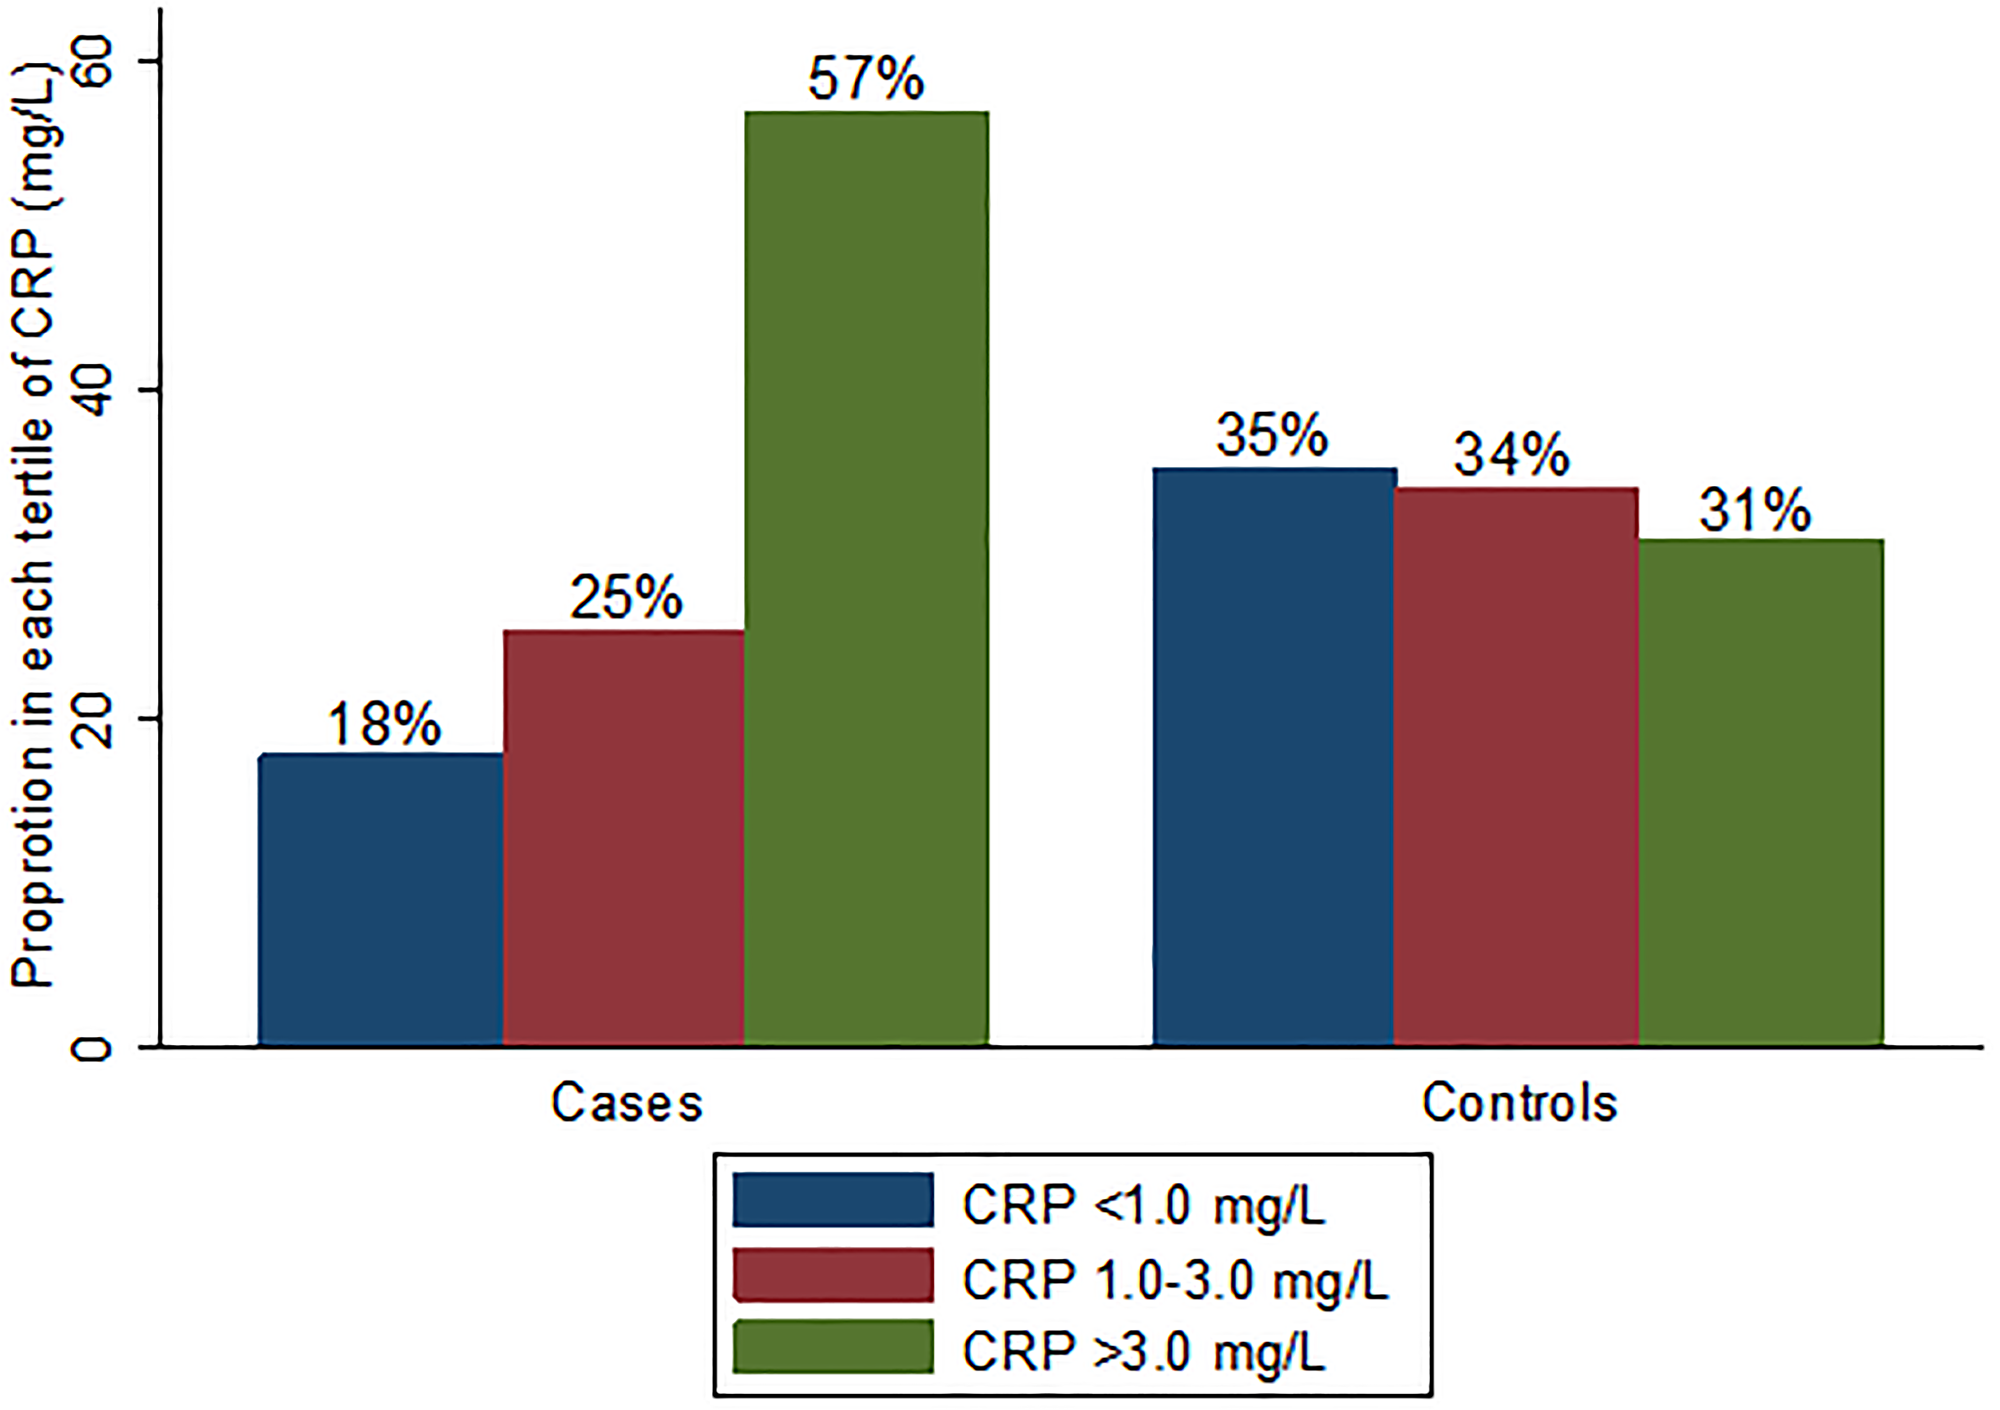 Proportion in each hsCRP category by case-control group.